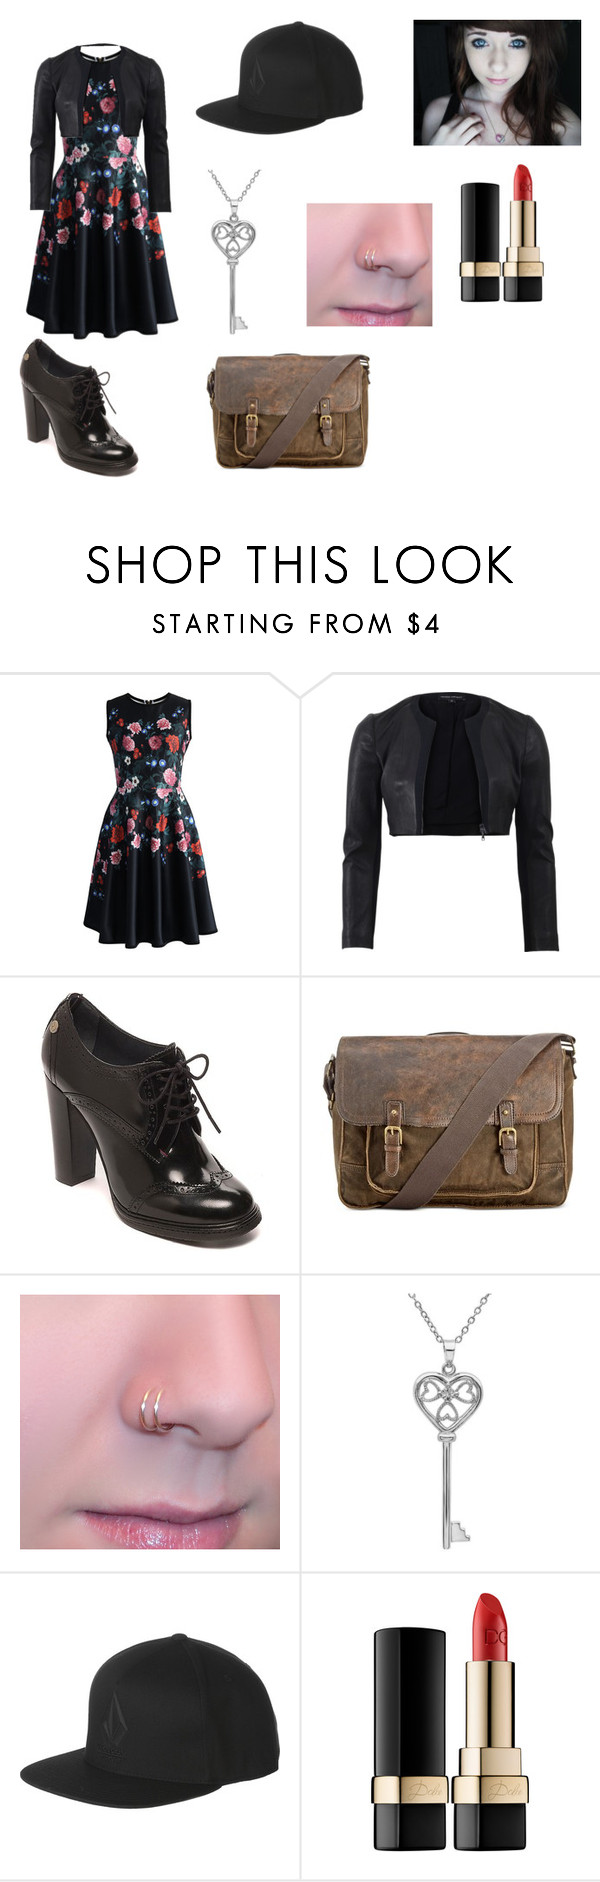 """""""~oooosnice~"""" by kawiwi on Polyvore featuring beauty, Chicwish, Narciso Rodriguez, Tommy Hilfiger, Patricia Nash, Amanda Rose Collection, Volcom and Dolce&Gabbana"""